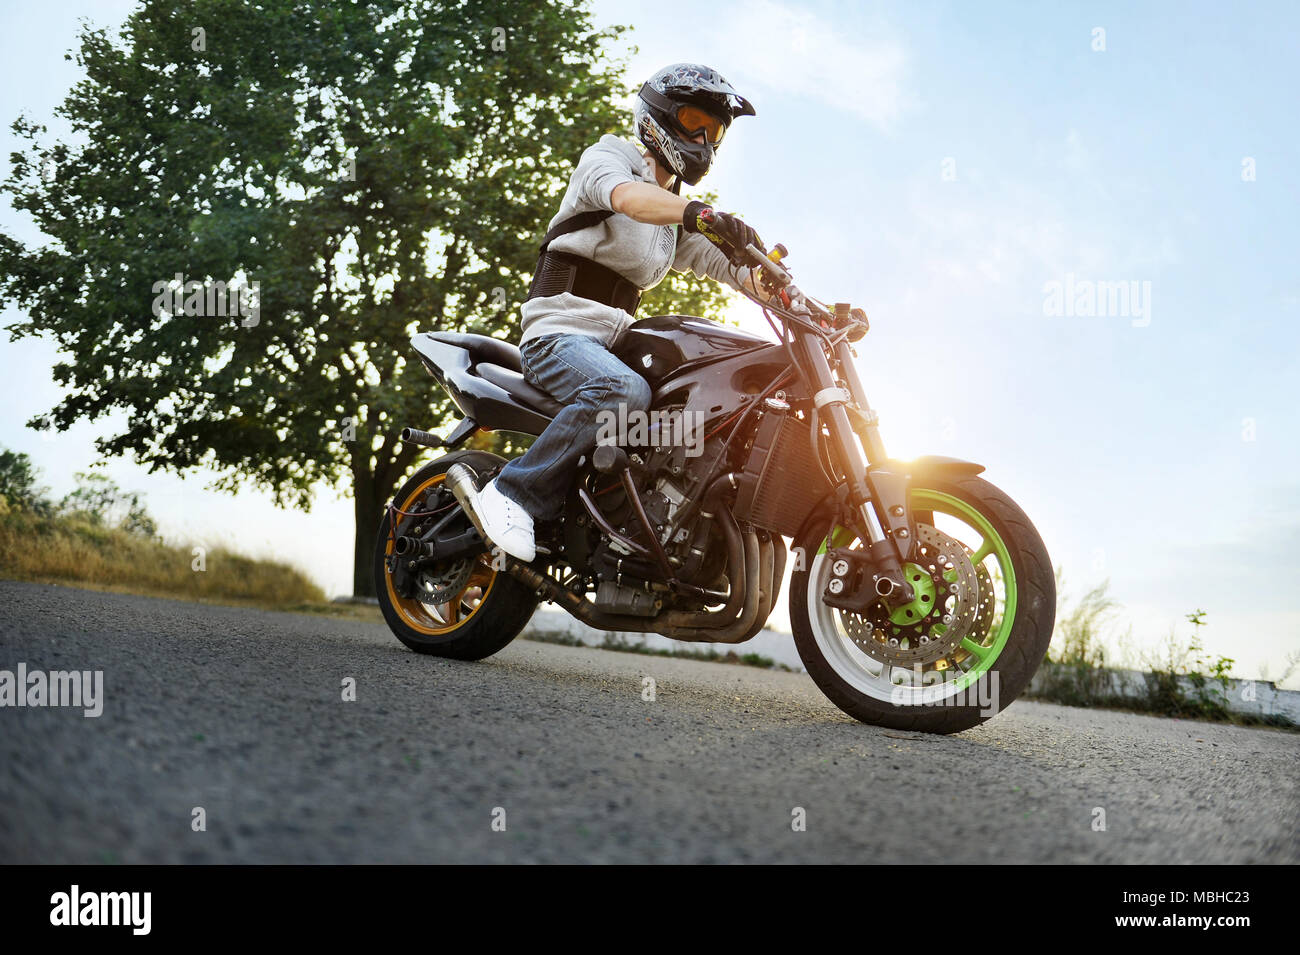 Ivano-Frankivsk, Ukraine - 28 August 2015 : Photo of biker, wearing protective helmet is sitting on his colorful sport motorcycle standing on summer road, filled with shine of sunset. Stock Photo